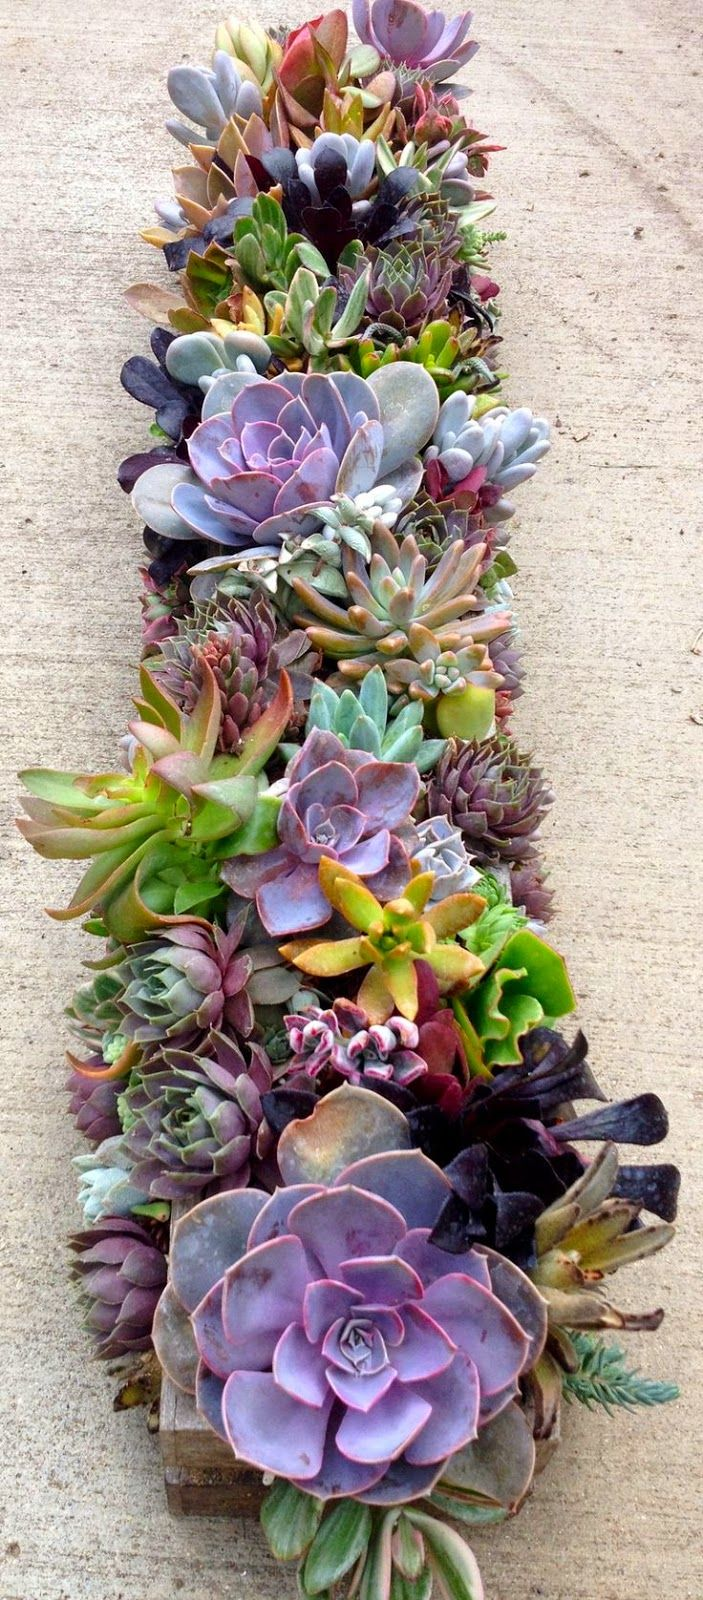 These succulents provide a multitude of variety through the different colours, shapes, sizes, and textures.